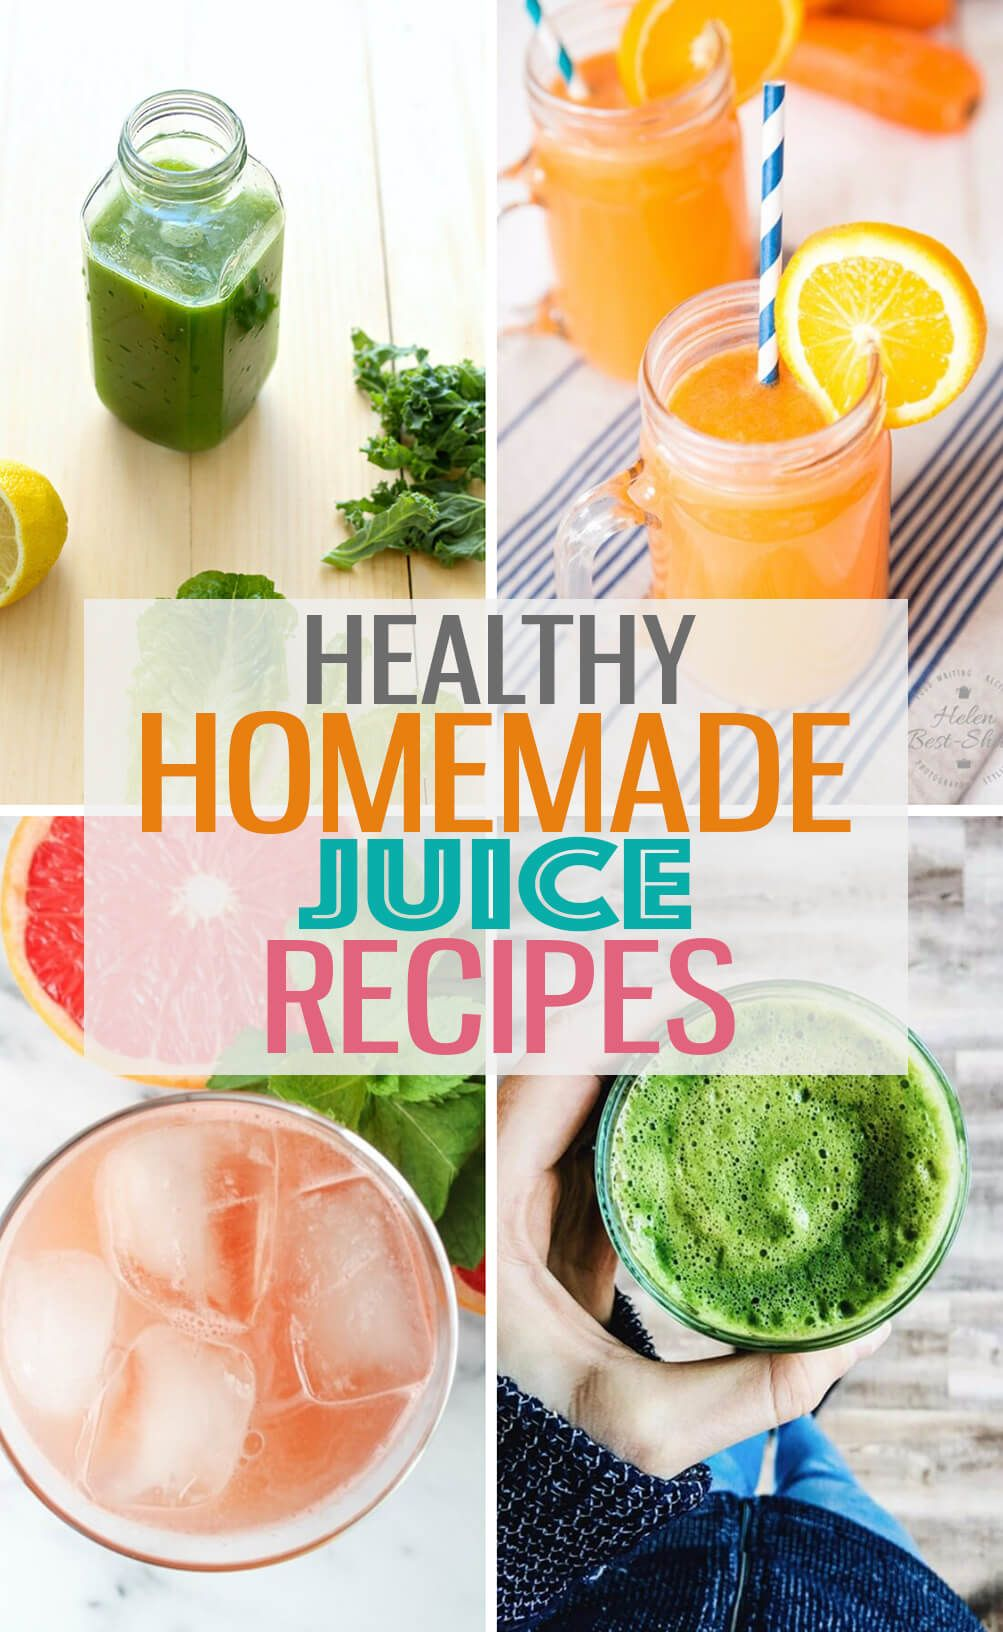 Juicing Recipes With Fresh Vegetables And Fruits Will Give You A Healthy Start To The New Year Use A Juic Juicing Recipes Homemade Juice Healthy Juice Recipes